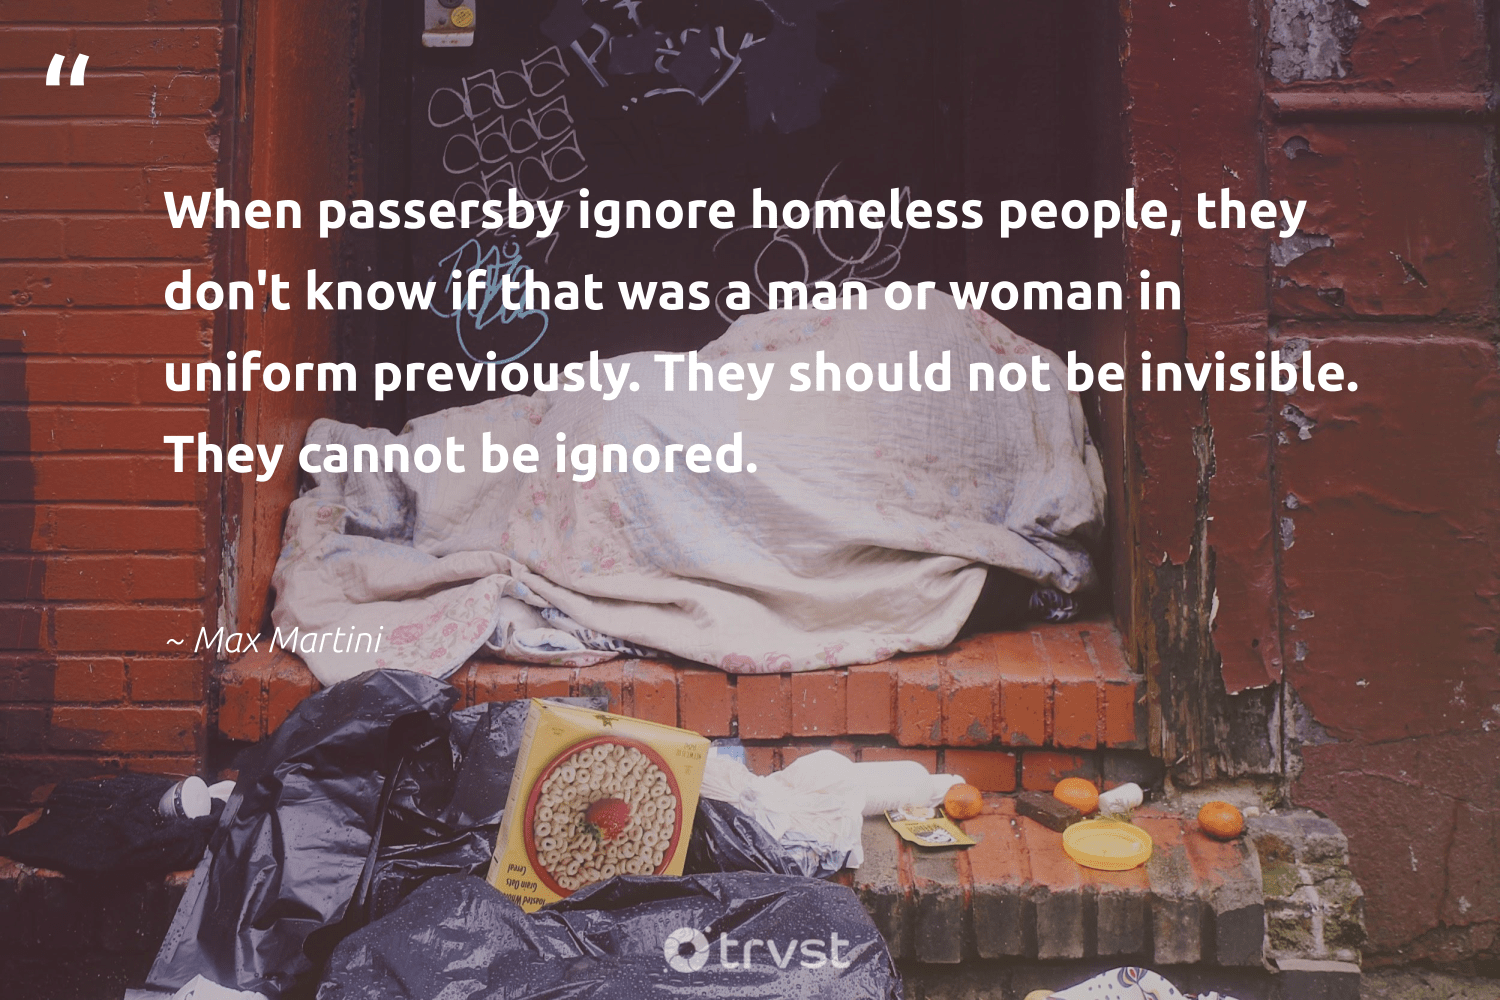 """""""When passersby ignore homeless people, they don't know if that was a man or woman in uniform previously. They should not be invisible. They cannot be ignored.""""  - Max Martini #trvst #quotes #homelessness #homeless #weareallone #inclusion #impact #makeadifference #sustainablefutures #dotherightthing #equalrights #equalopportunity"""